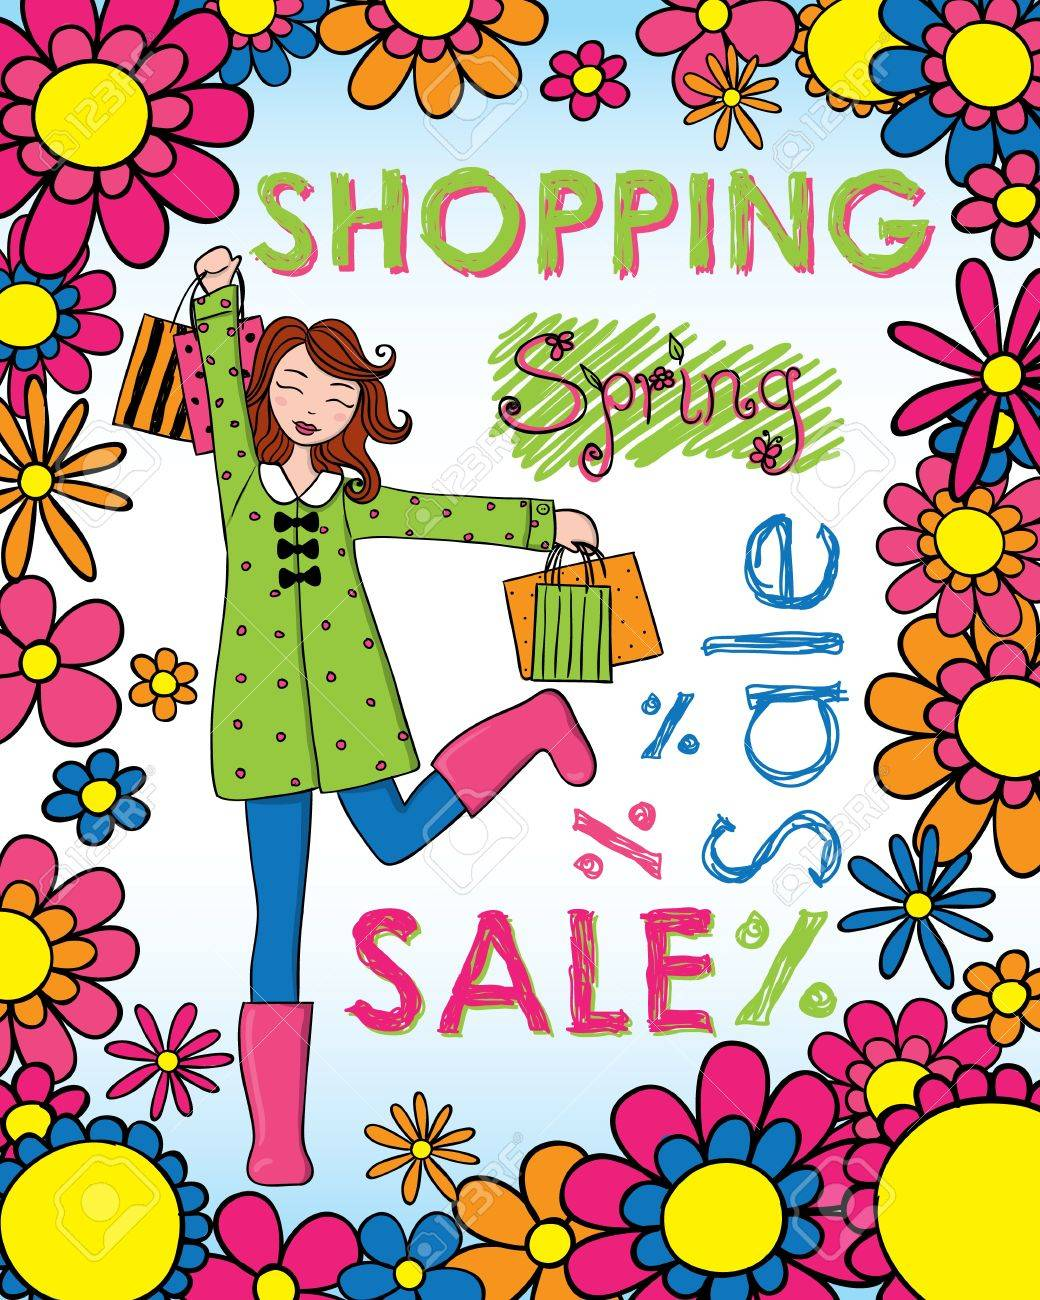 Cute woman with shopping bags wearing spring clothing. - 12498019